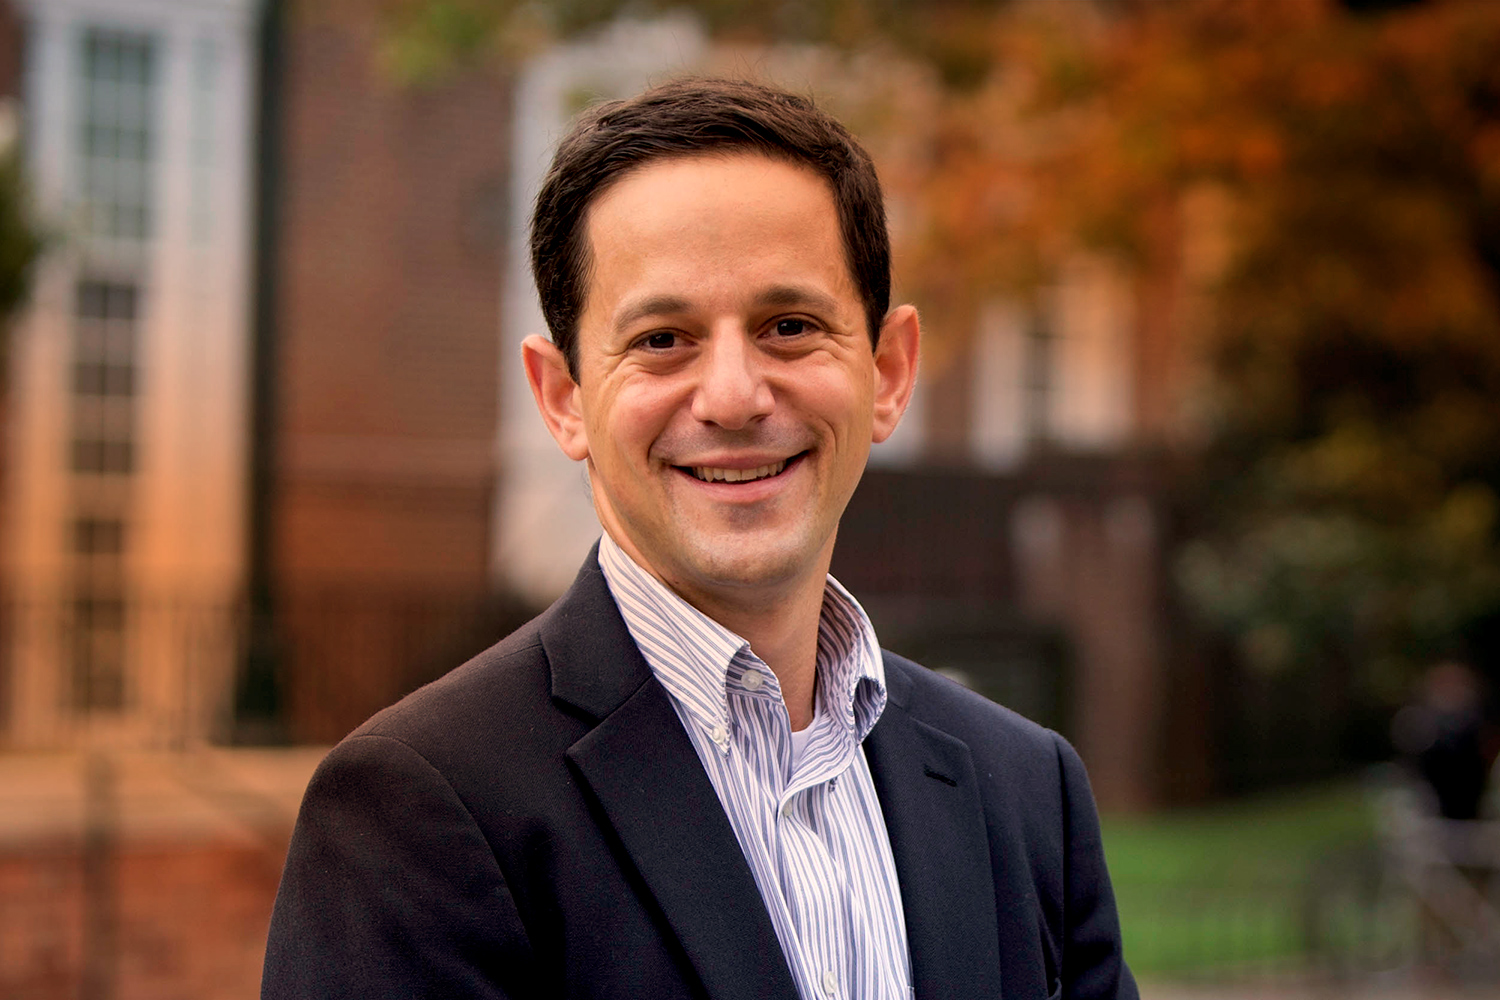 Curry School professor Ben Castleman is working with the White House to use text messaging to encourage students to pursue education after high school. (Photo by Sanjay Suchak)